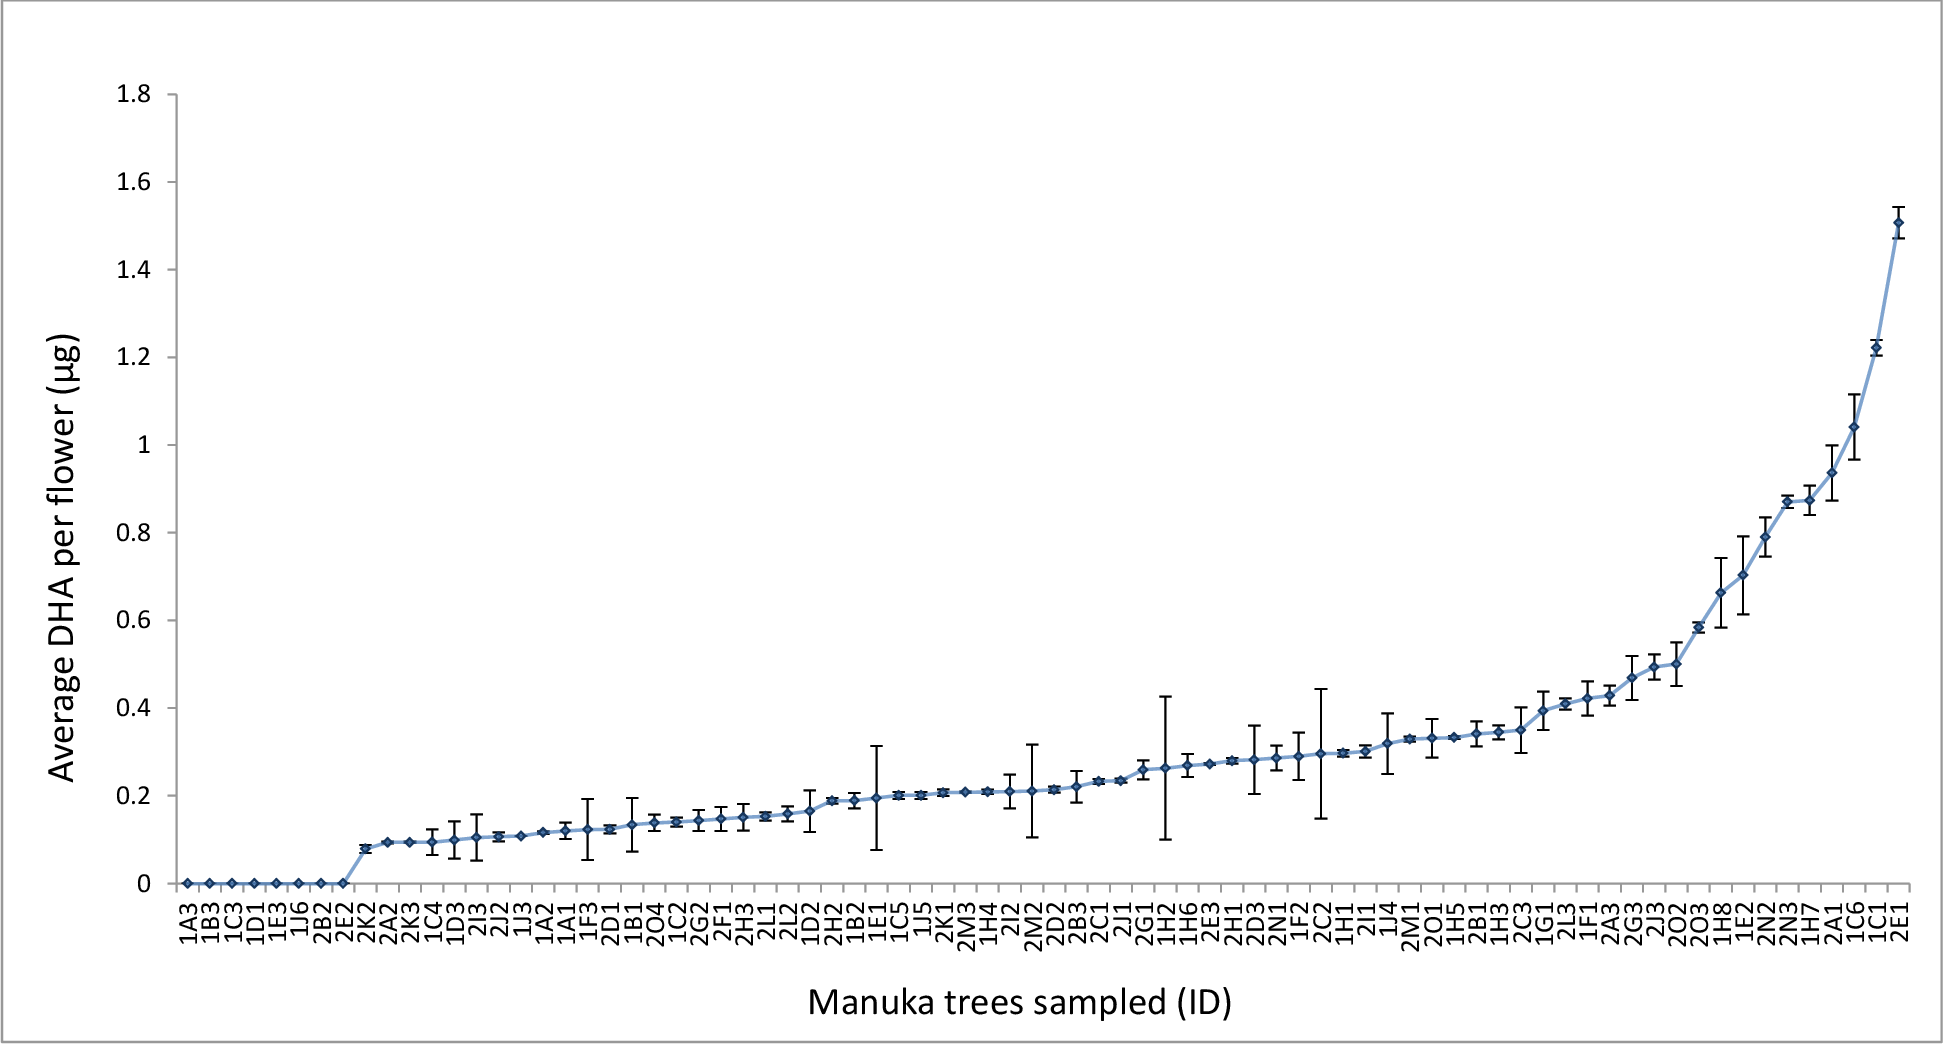 Figure 38: The average mass of DHA per f lower in µg for each of the 78 manuka trees sampled during the study sorted by DHA flower content. Tree ID codes are in the format trip number/site letter/tree number. Error bars show standard deviation of analyt ical replicates.